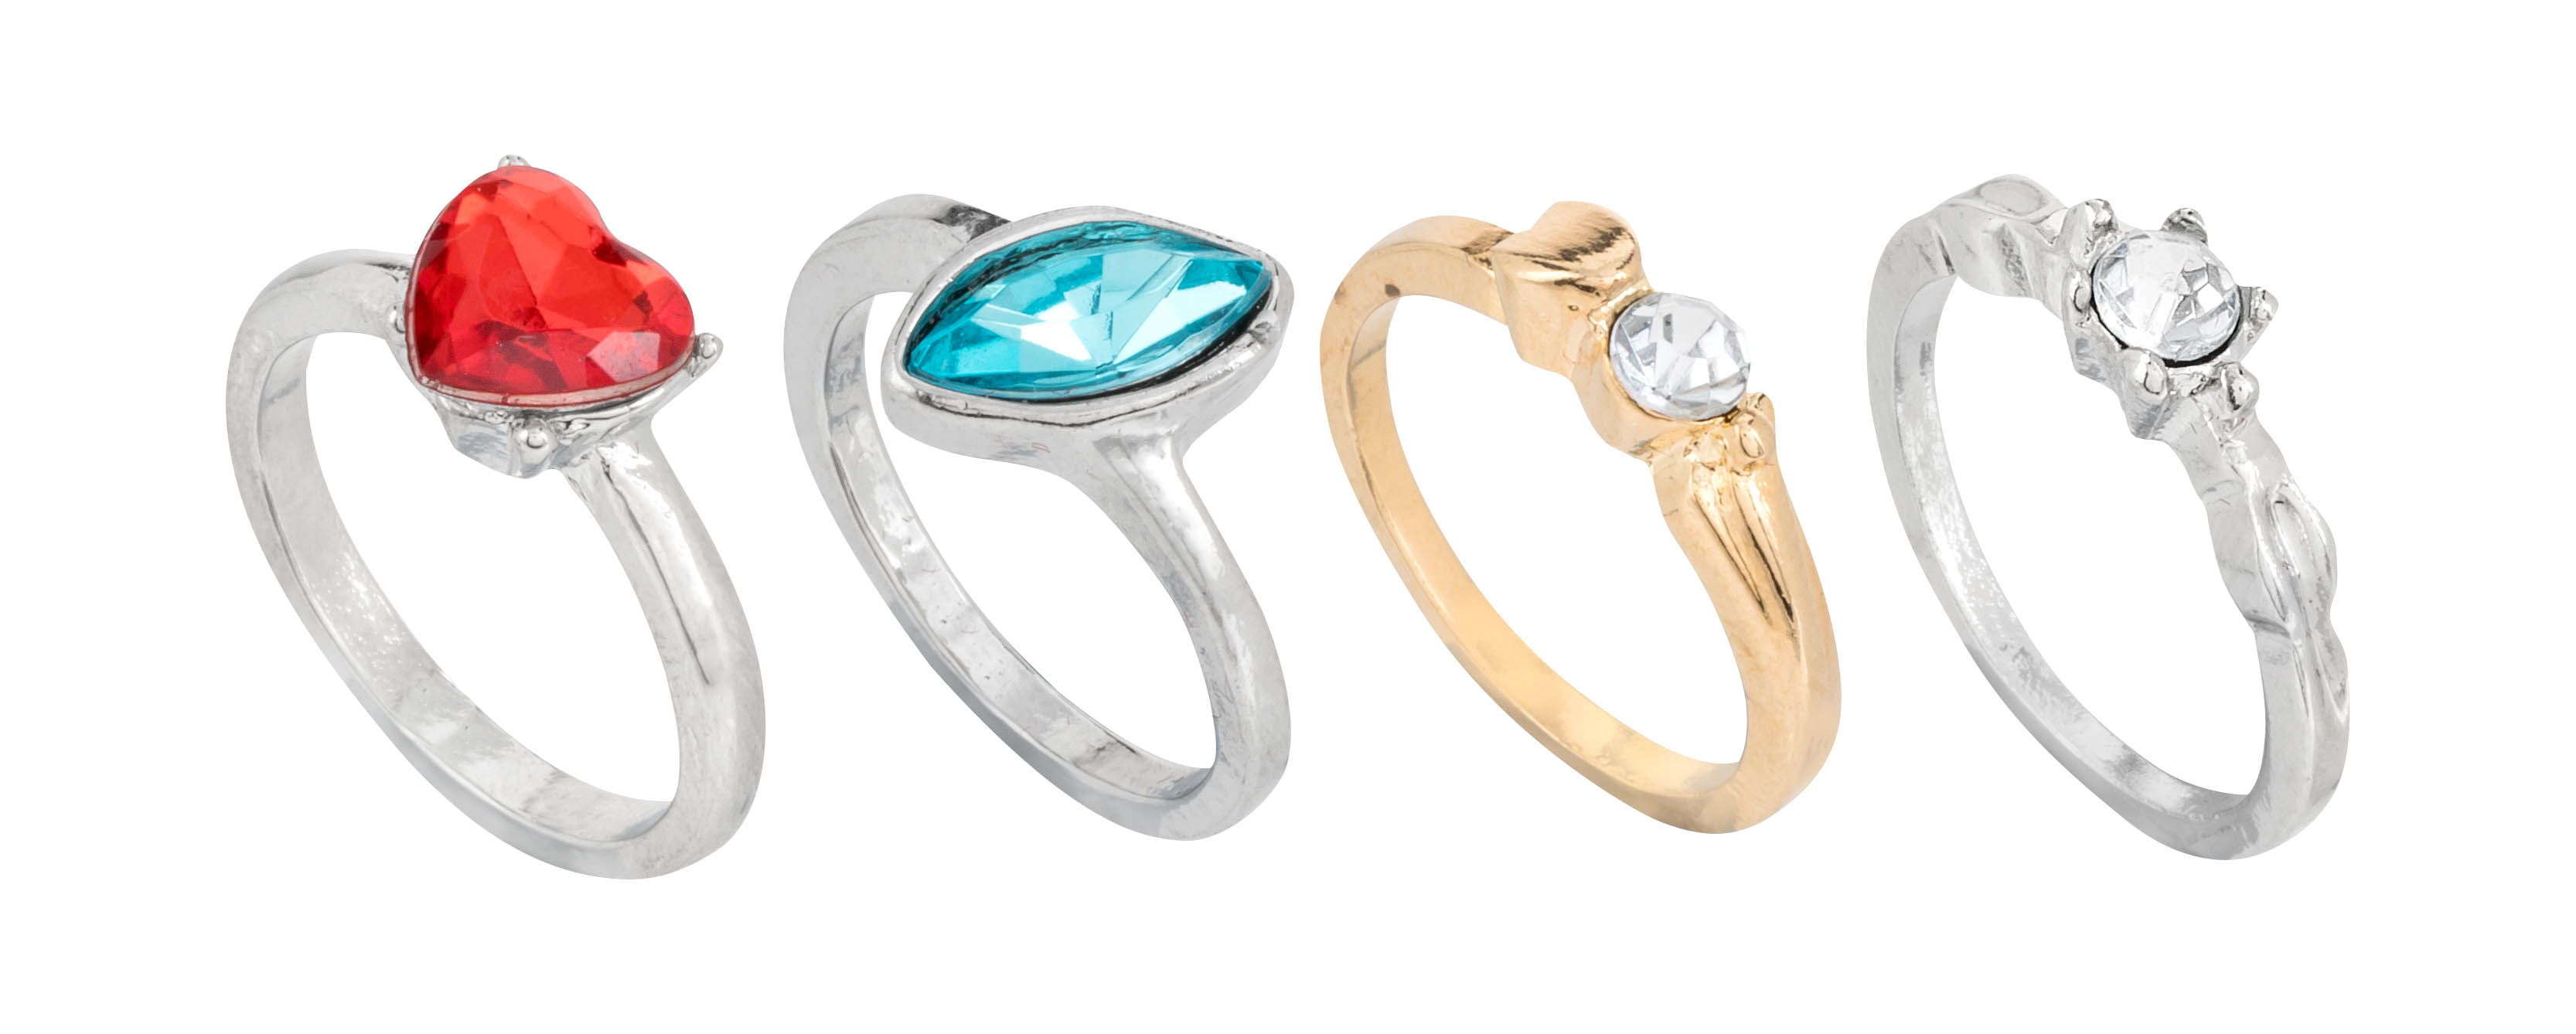 The rings are available in a number of sizes in all Poundland stores